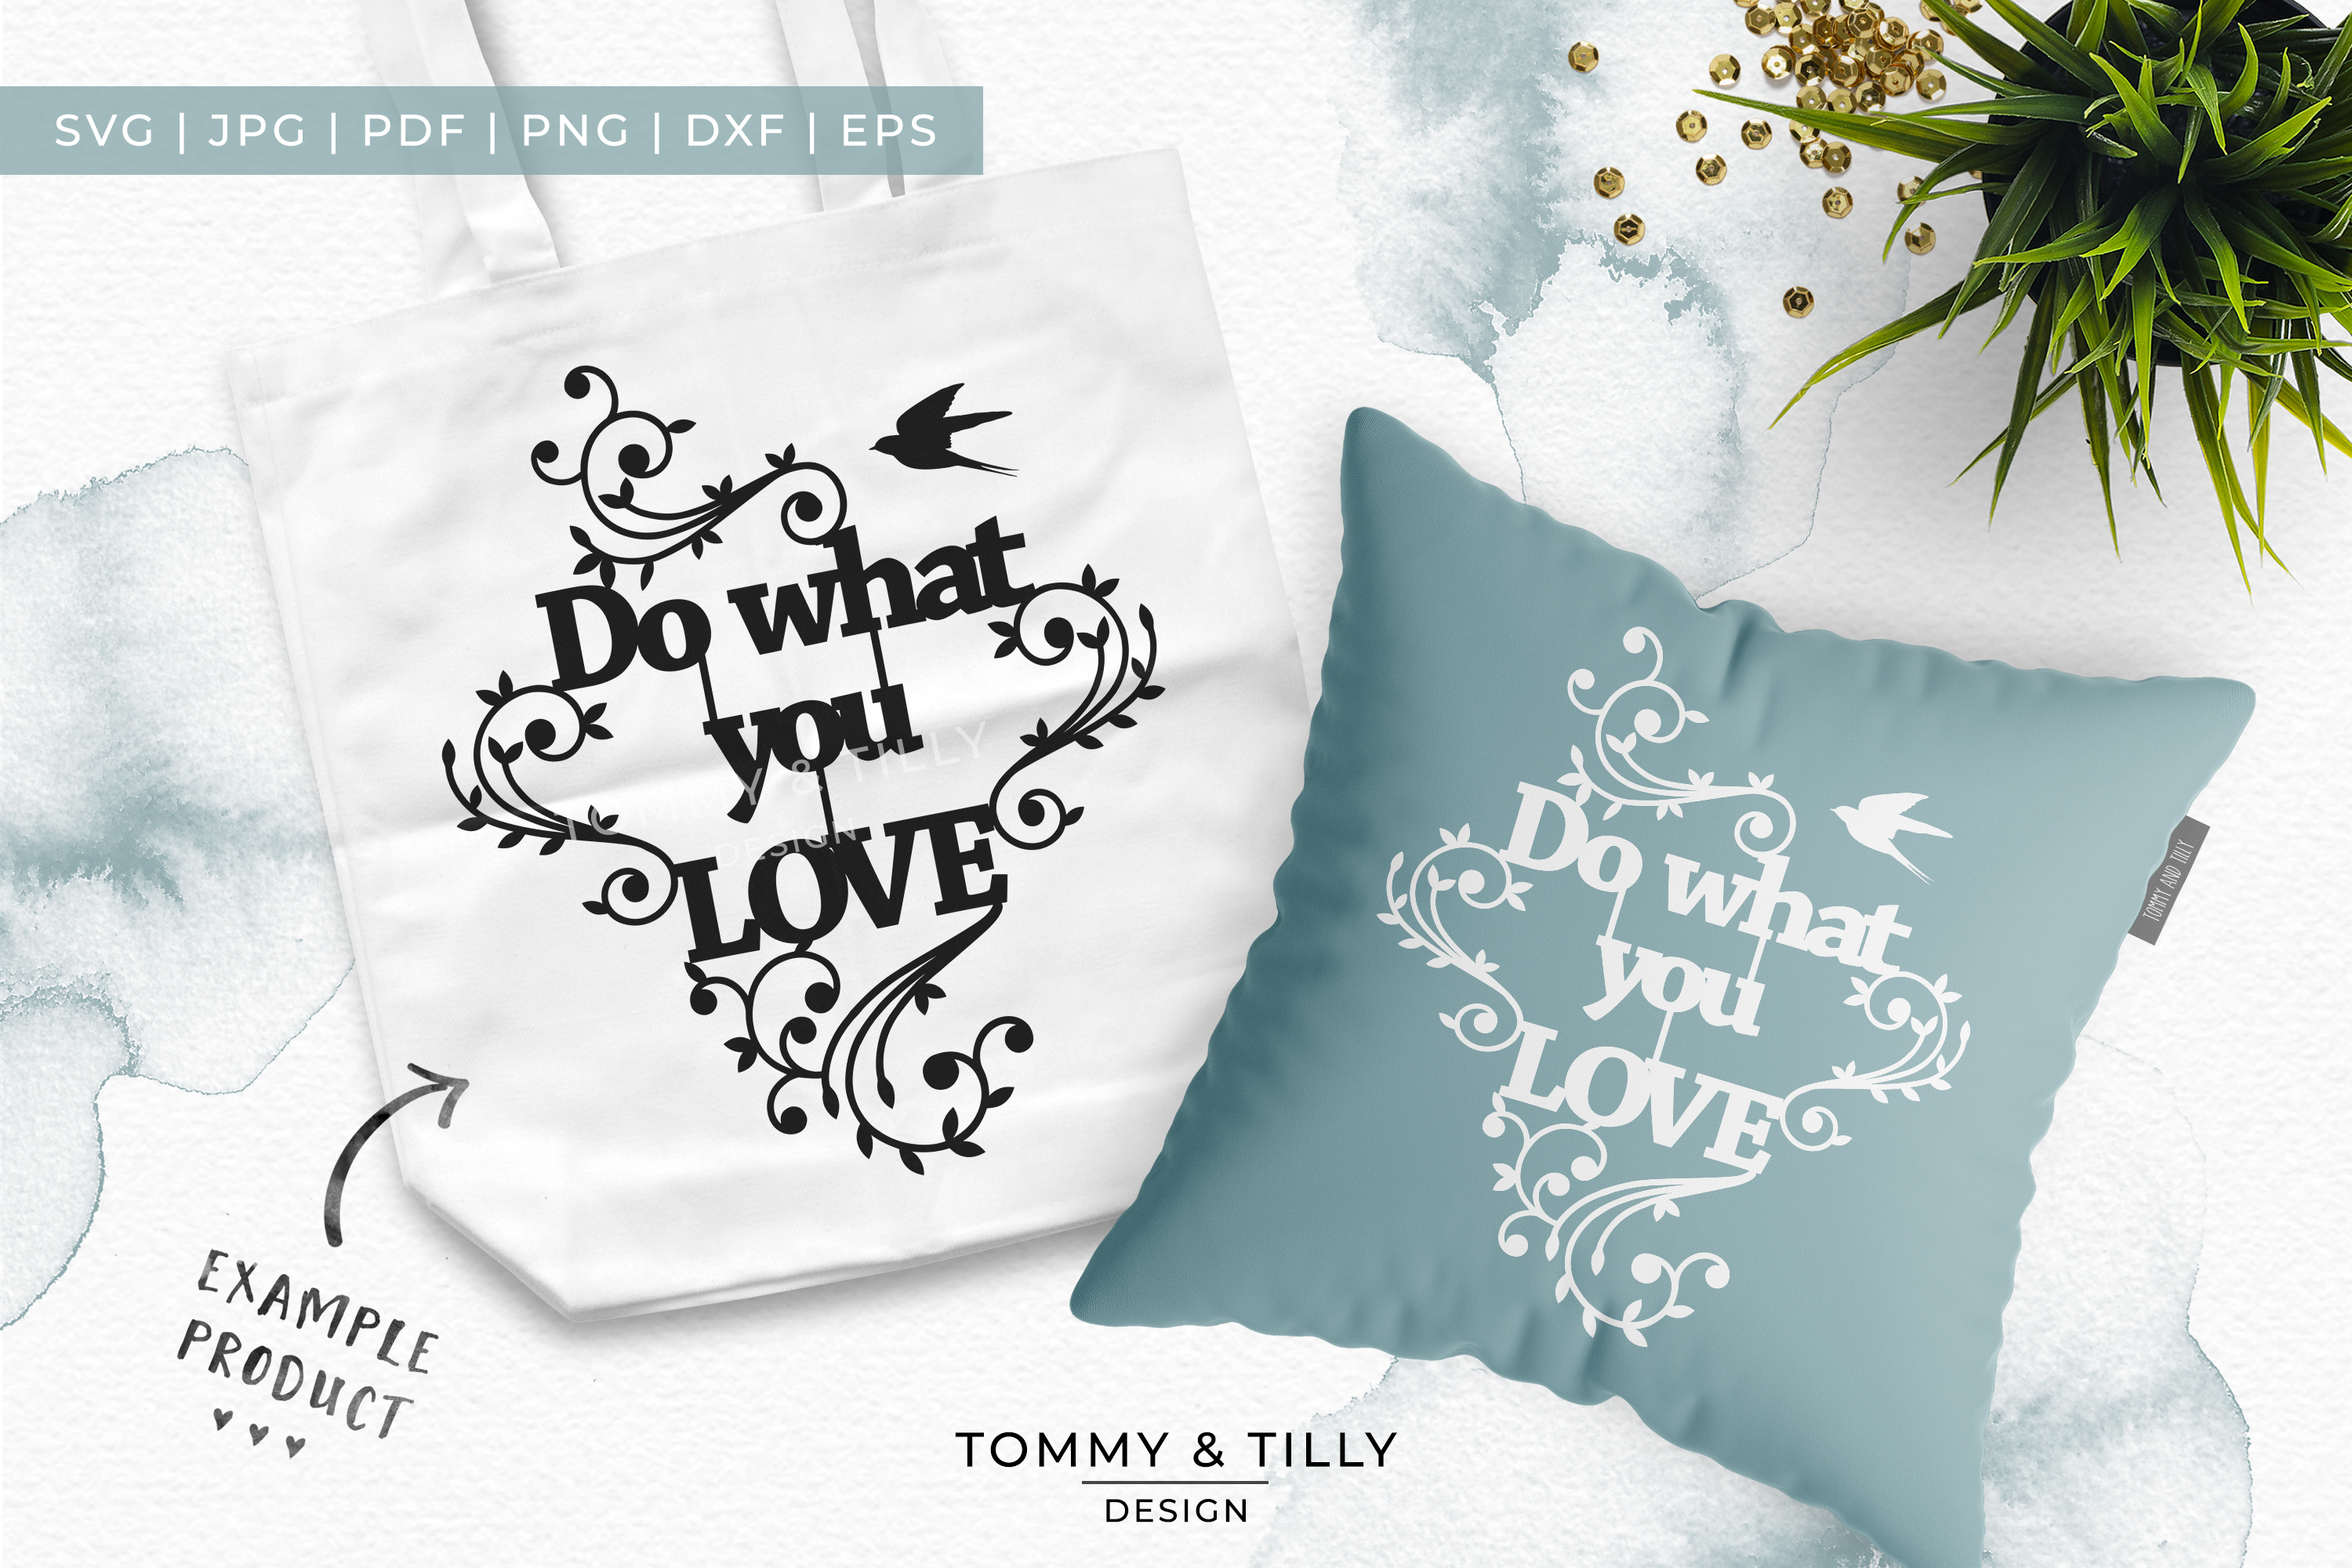 Do what you love - Papercut SVG EPS DXF PNG PDF example image 3